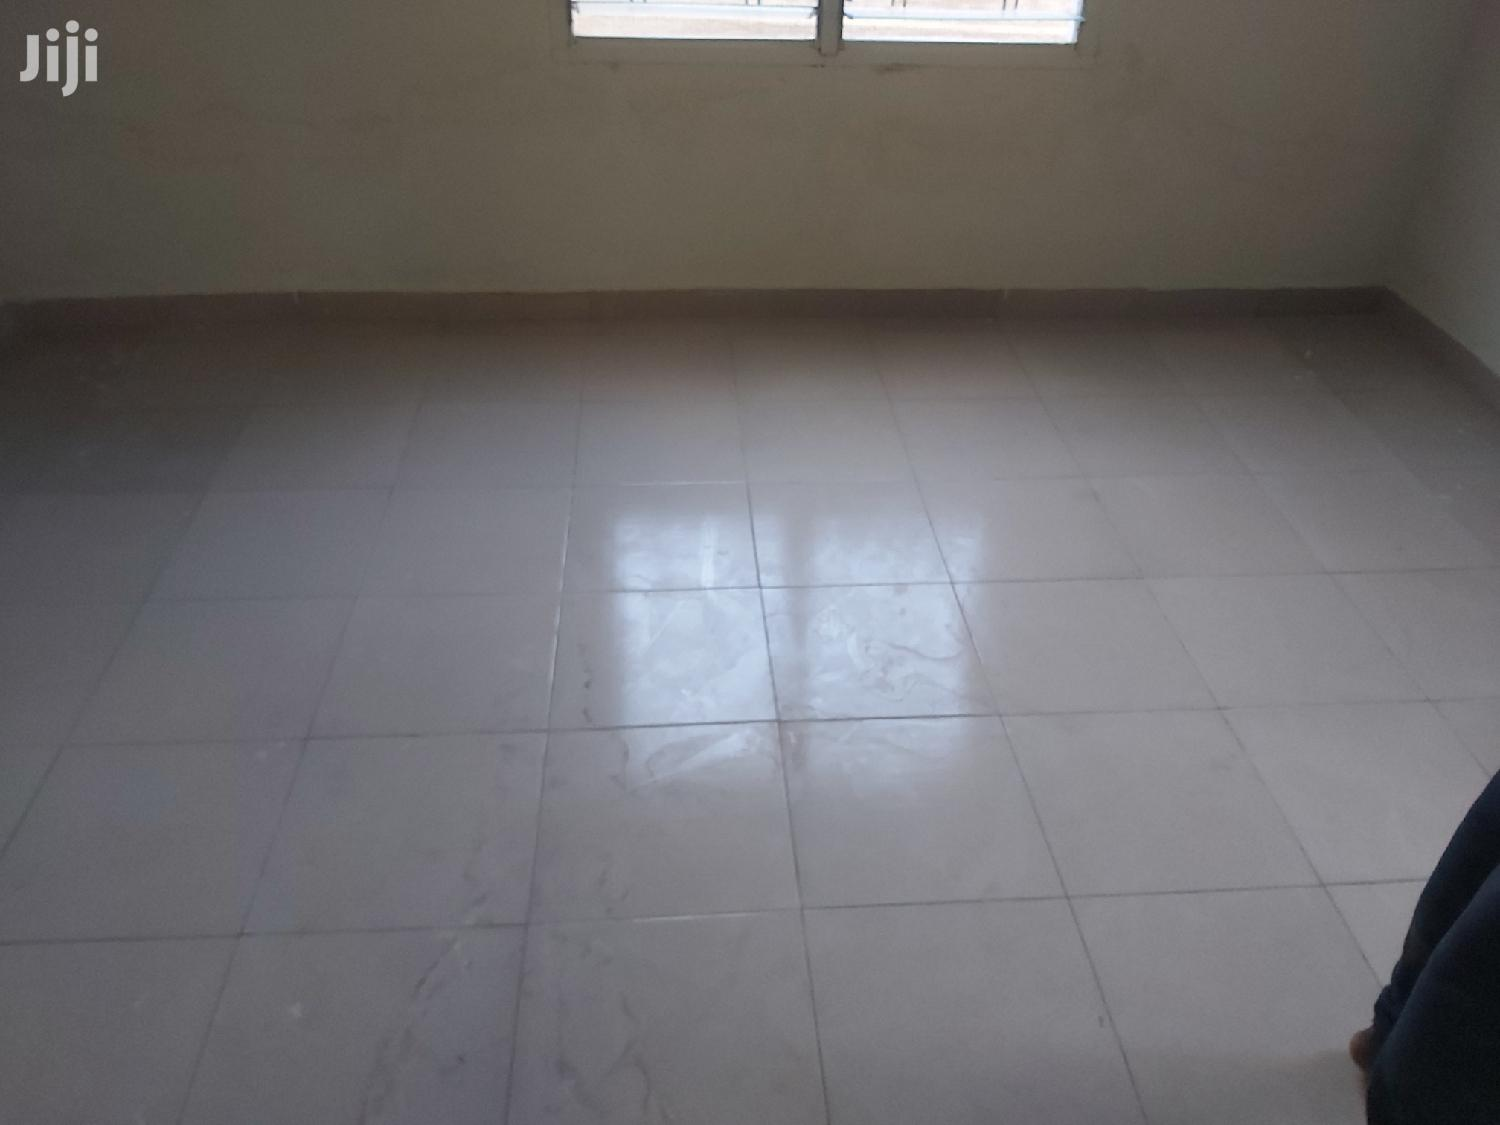 Four Bed Room Full House at Ipt-Container for Rent. | Houses & Apartments For Rent for sale in Kumasi Metropolitan, Ashanti, Ghana